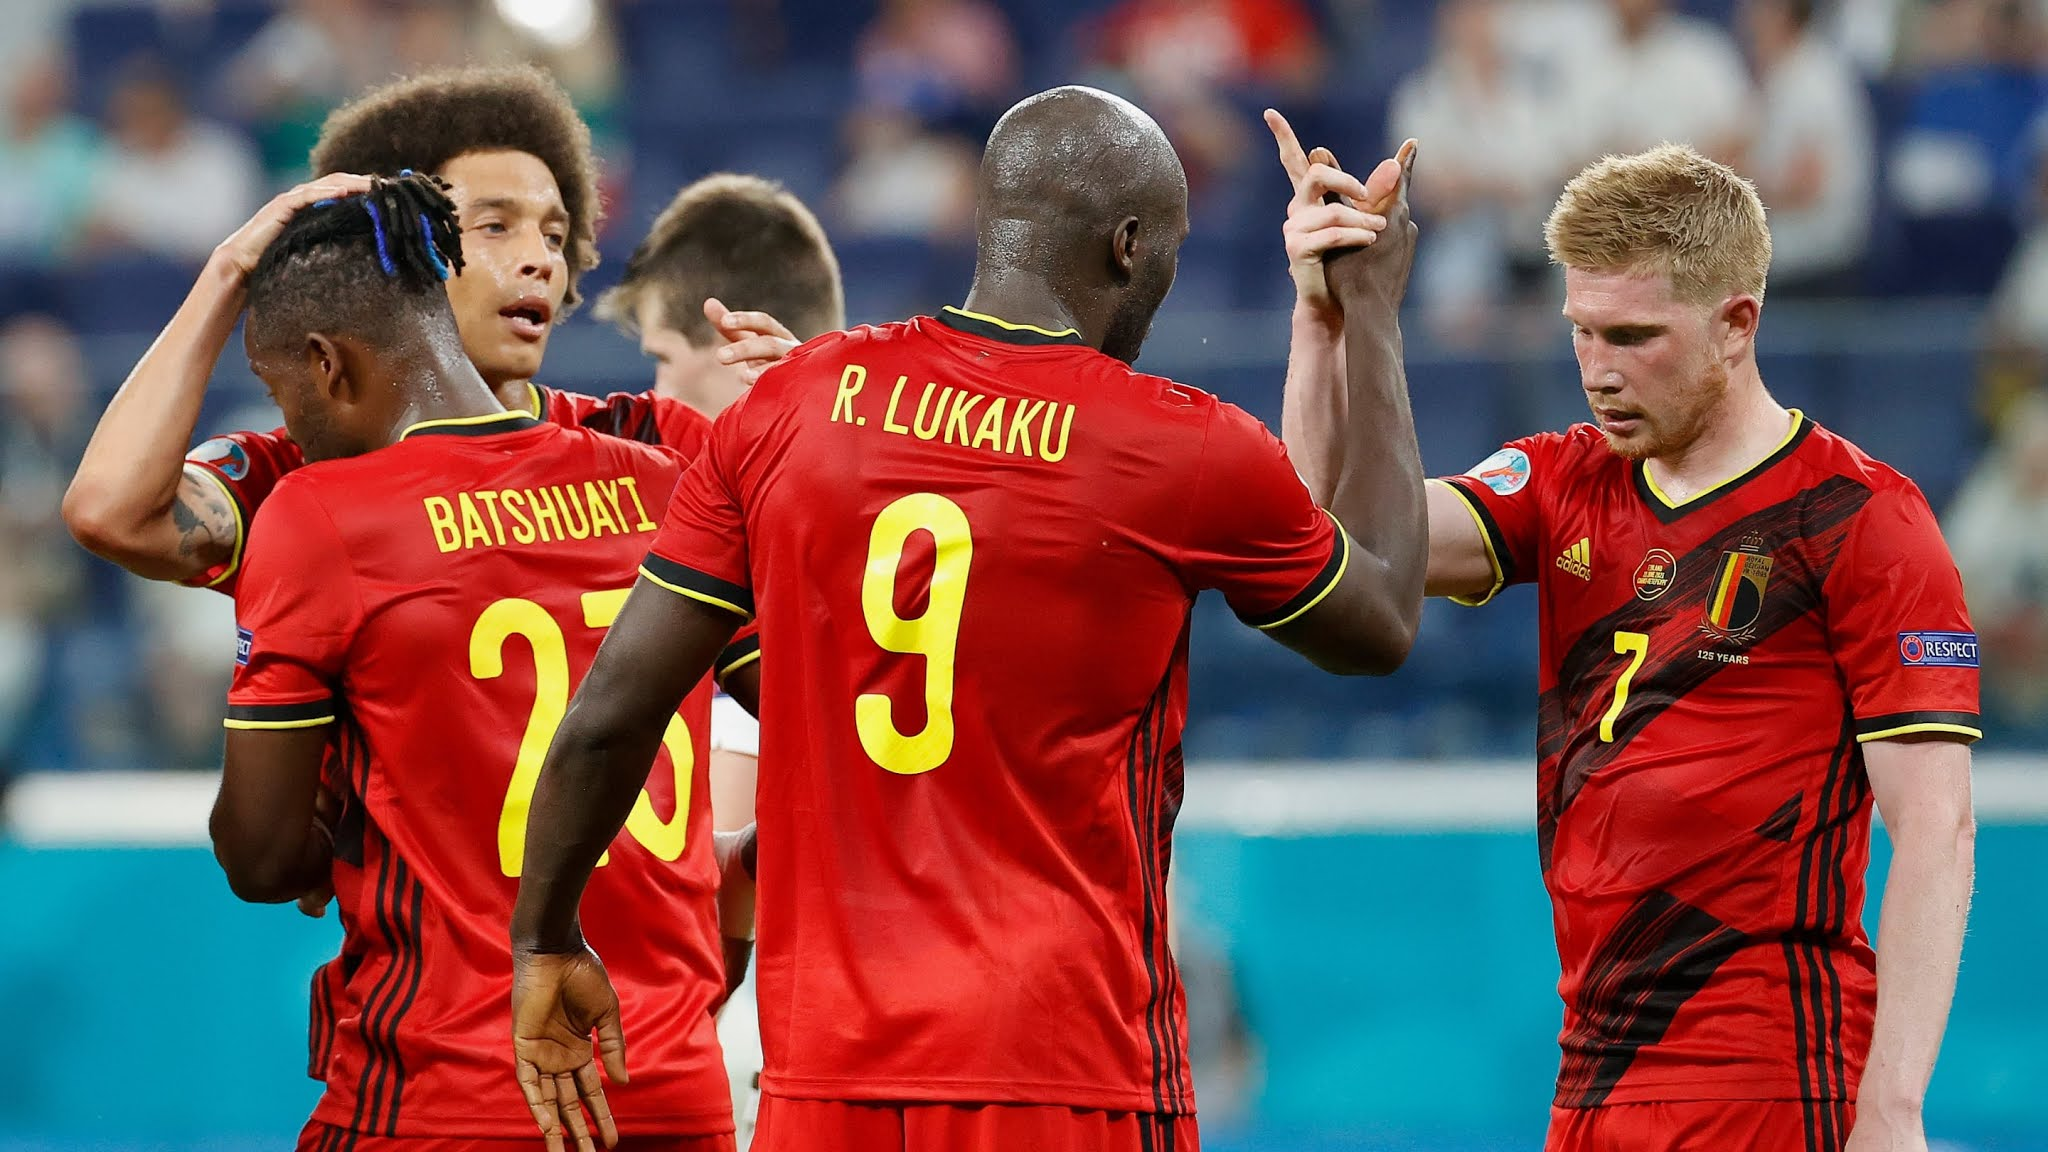 Belgium clash with Italy in the headline act on Friday night